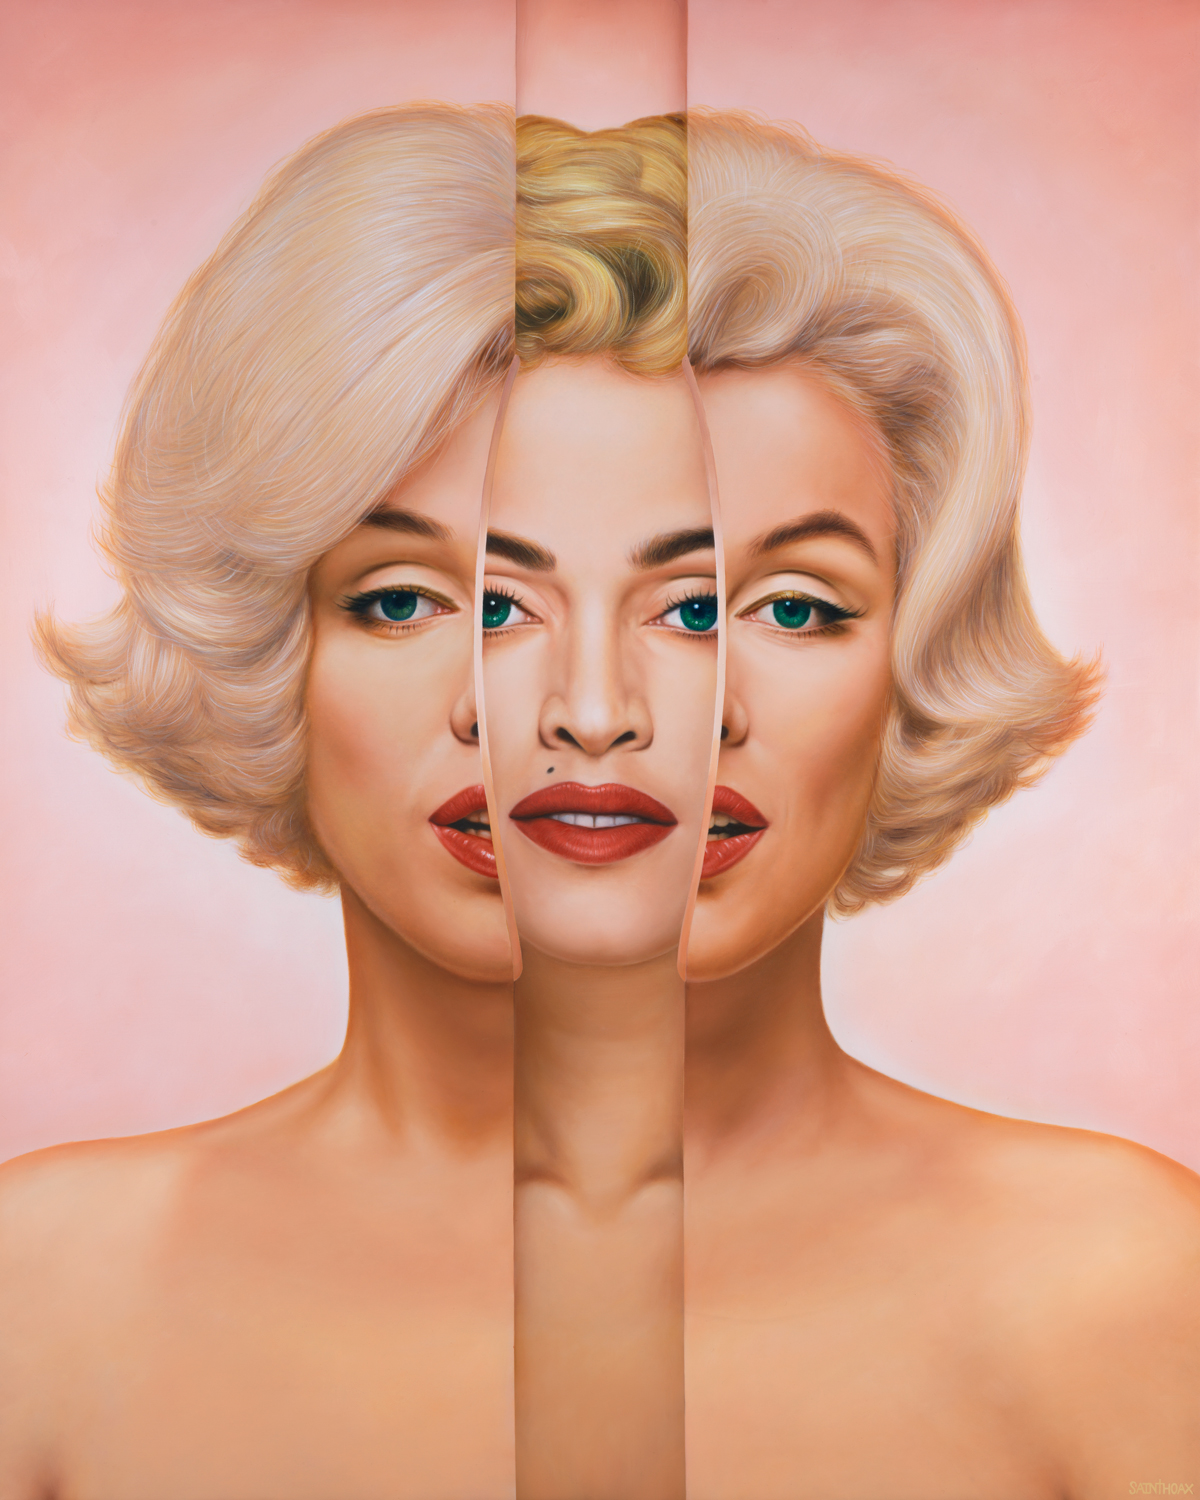 BLOND AMBITION - 2018Oil on canvas120 x 150 cm ( 47.2 x 59 in)$42,000